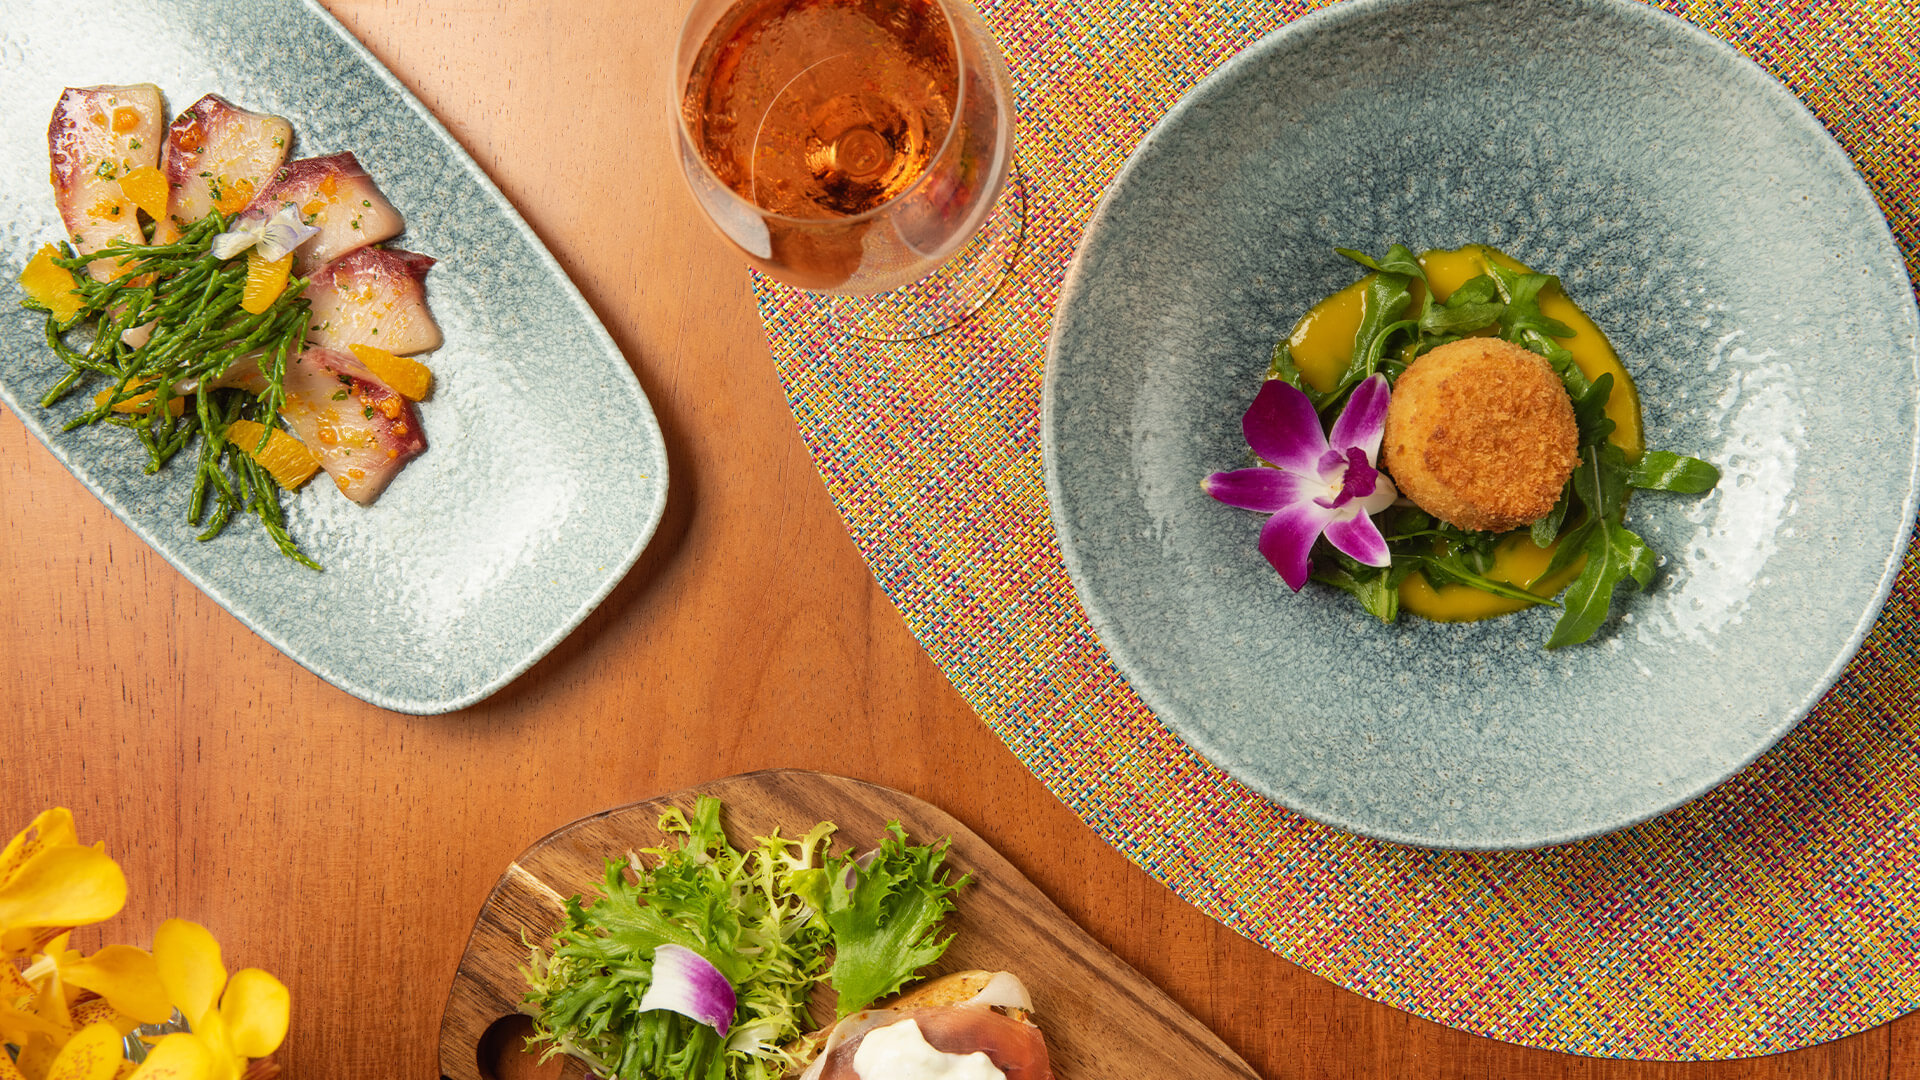 Wine paired with Mediterranean-influenced tapas style dishes